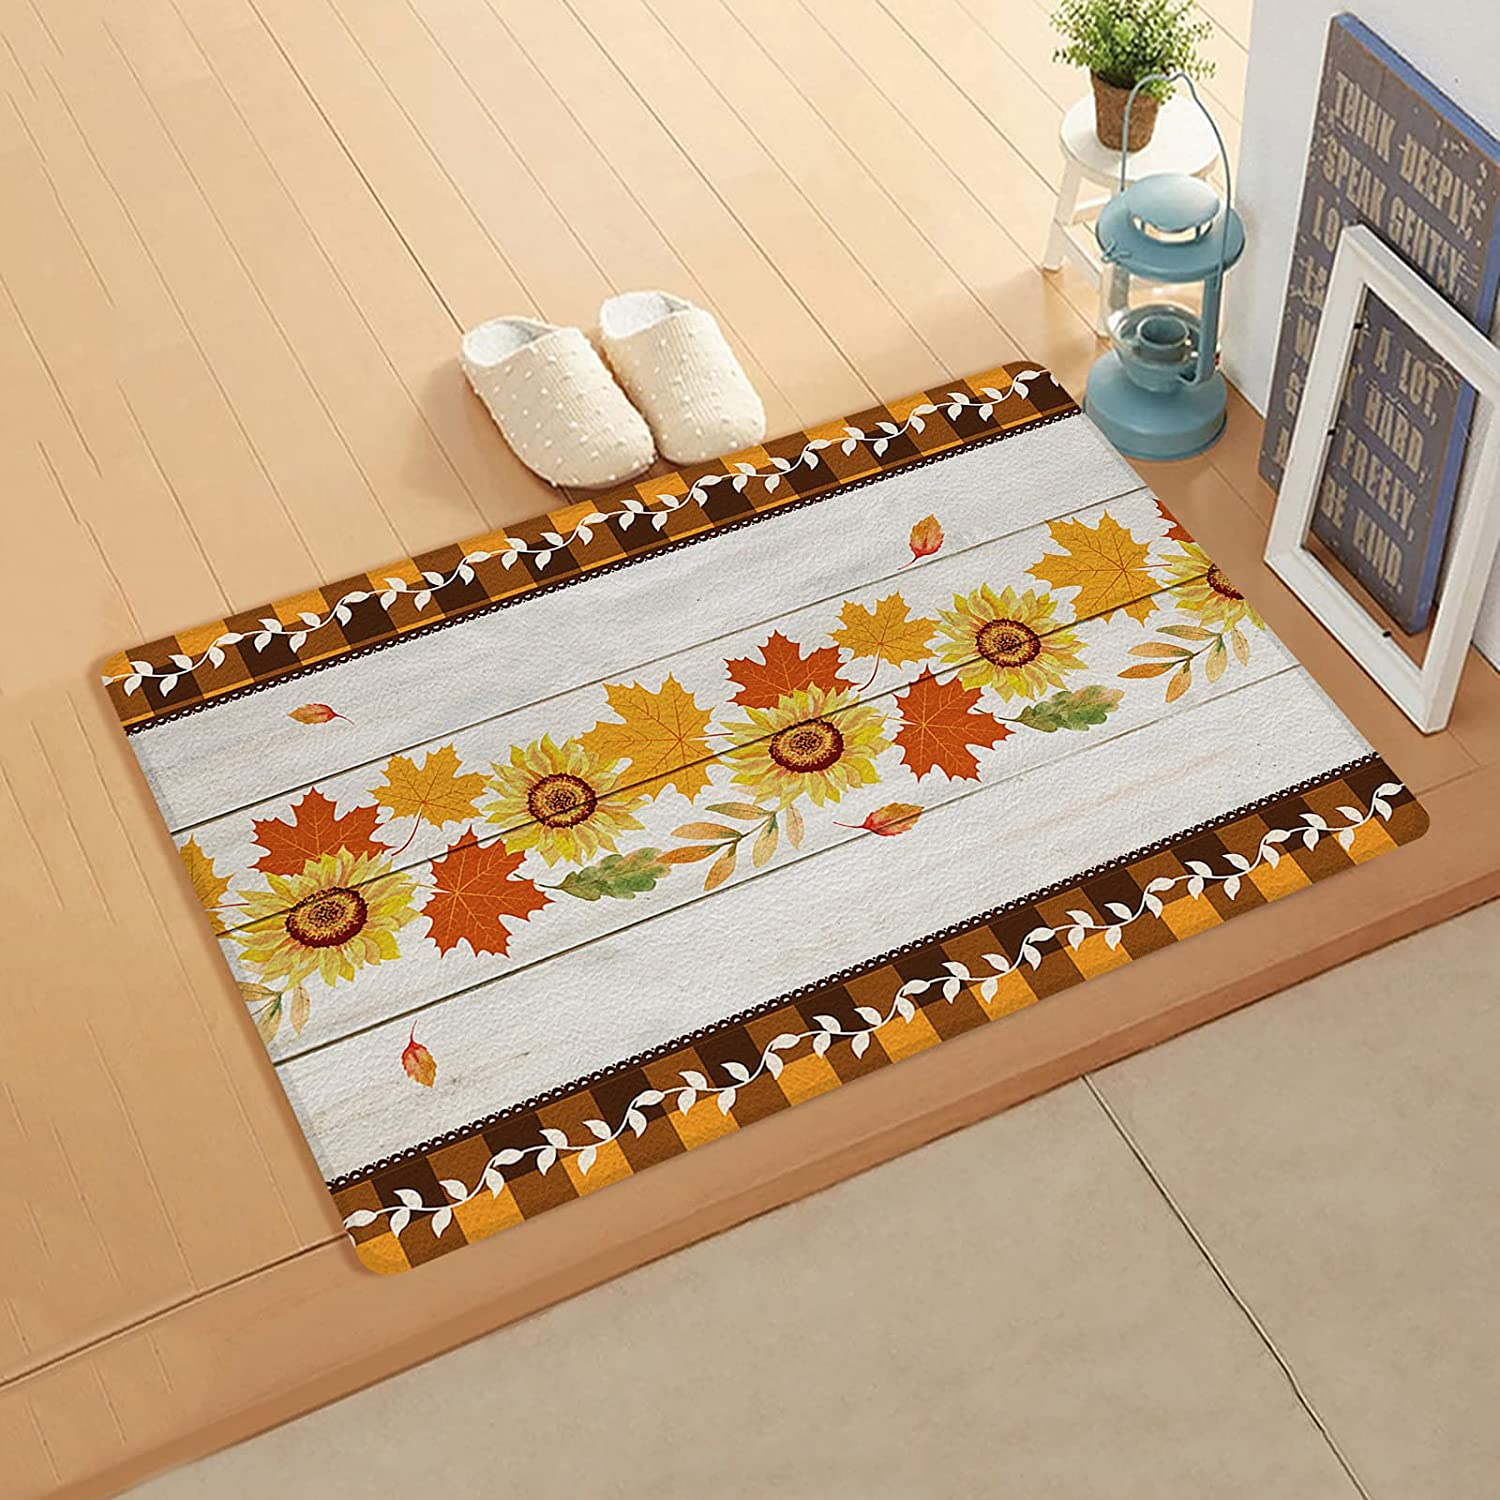 Ranking TOP20 InvisibleWings Kitchen Mat Cushioned Tha Comfort Max 51% OFF Happy Floor